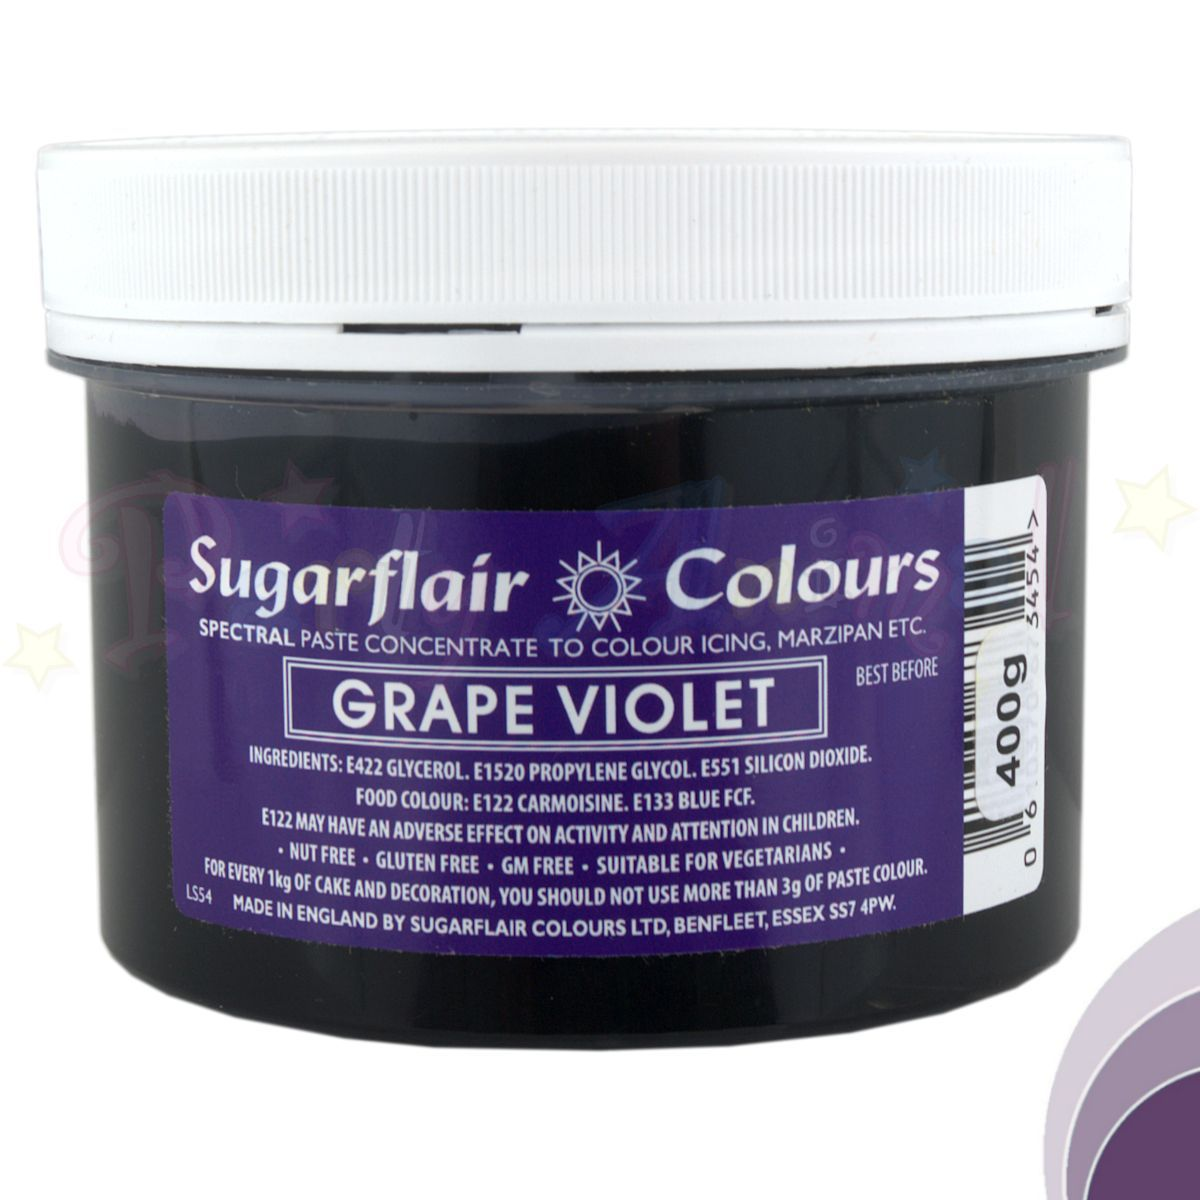 Sugarflair Spectral Paste GRAPE VIOLET Food Colour - BULK 400g